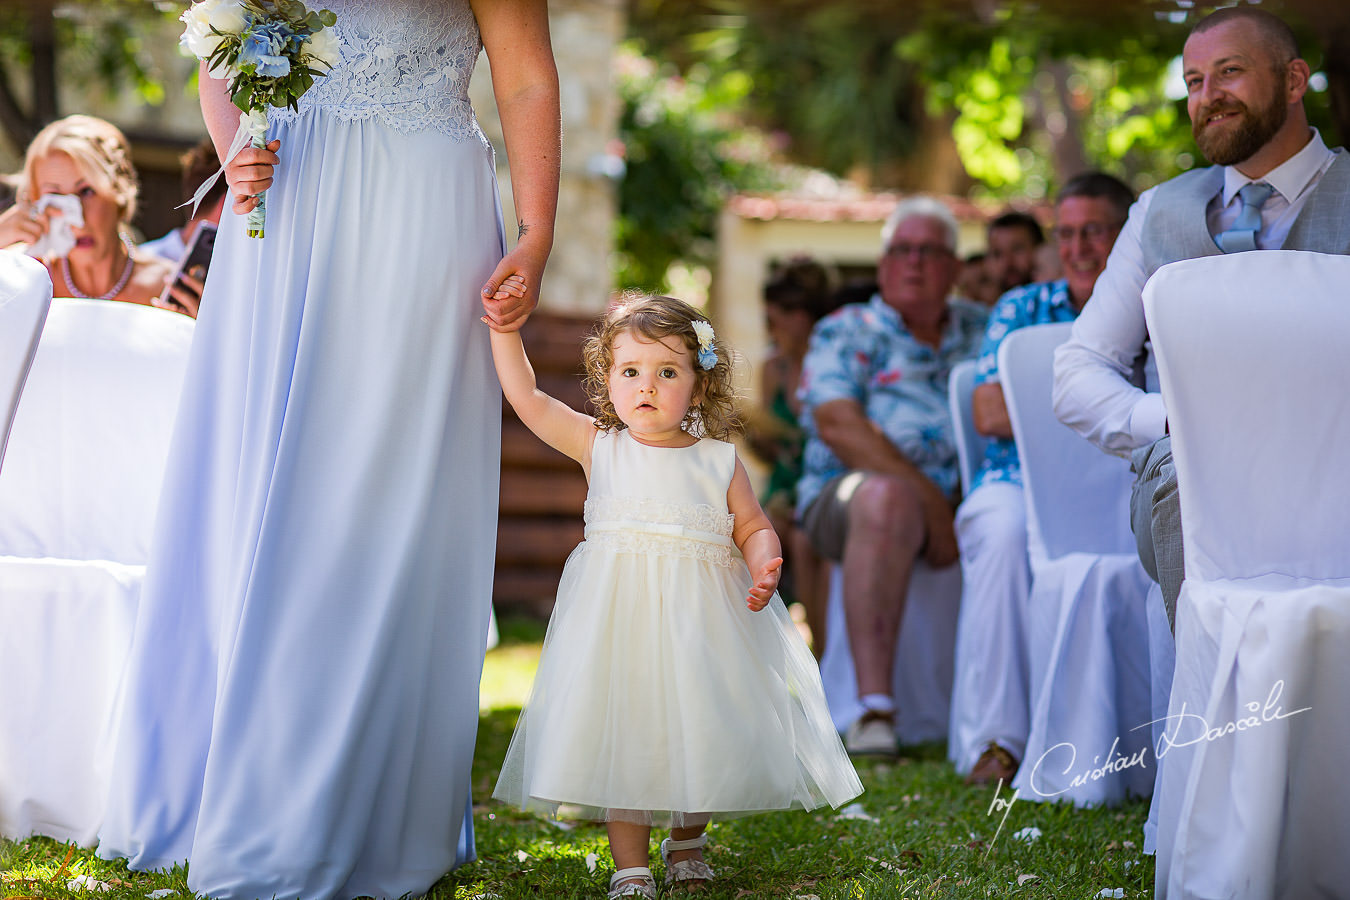 Wedding moments captured at a Vasilias Nikoklis Inn Wedding in Paphos. Cyprus Wedding Photography by Cristian Dascalu.